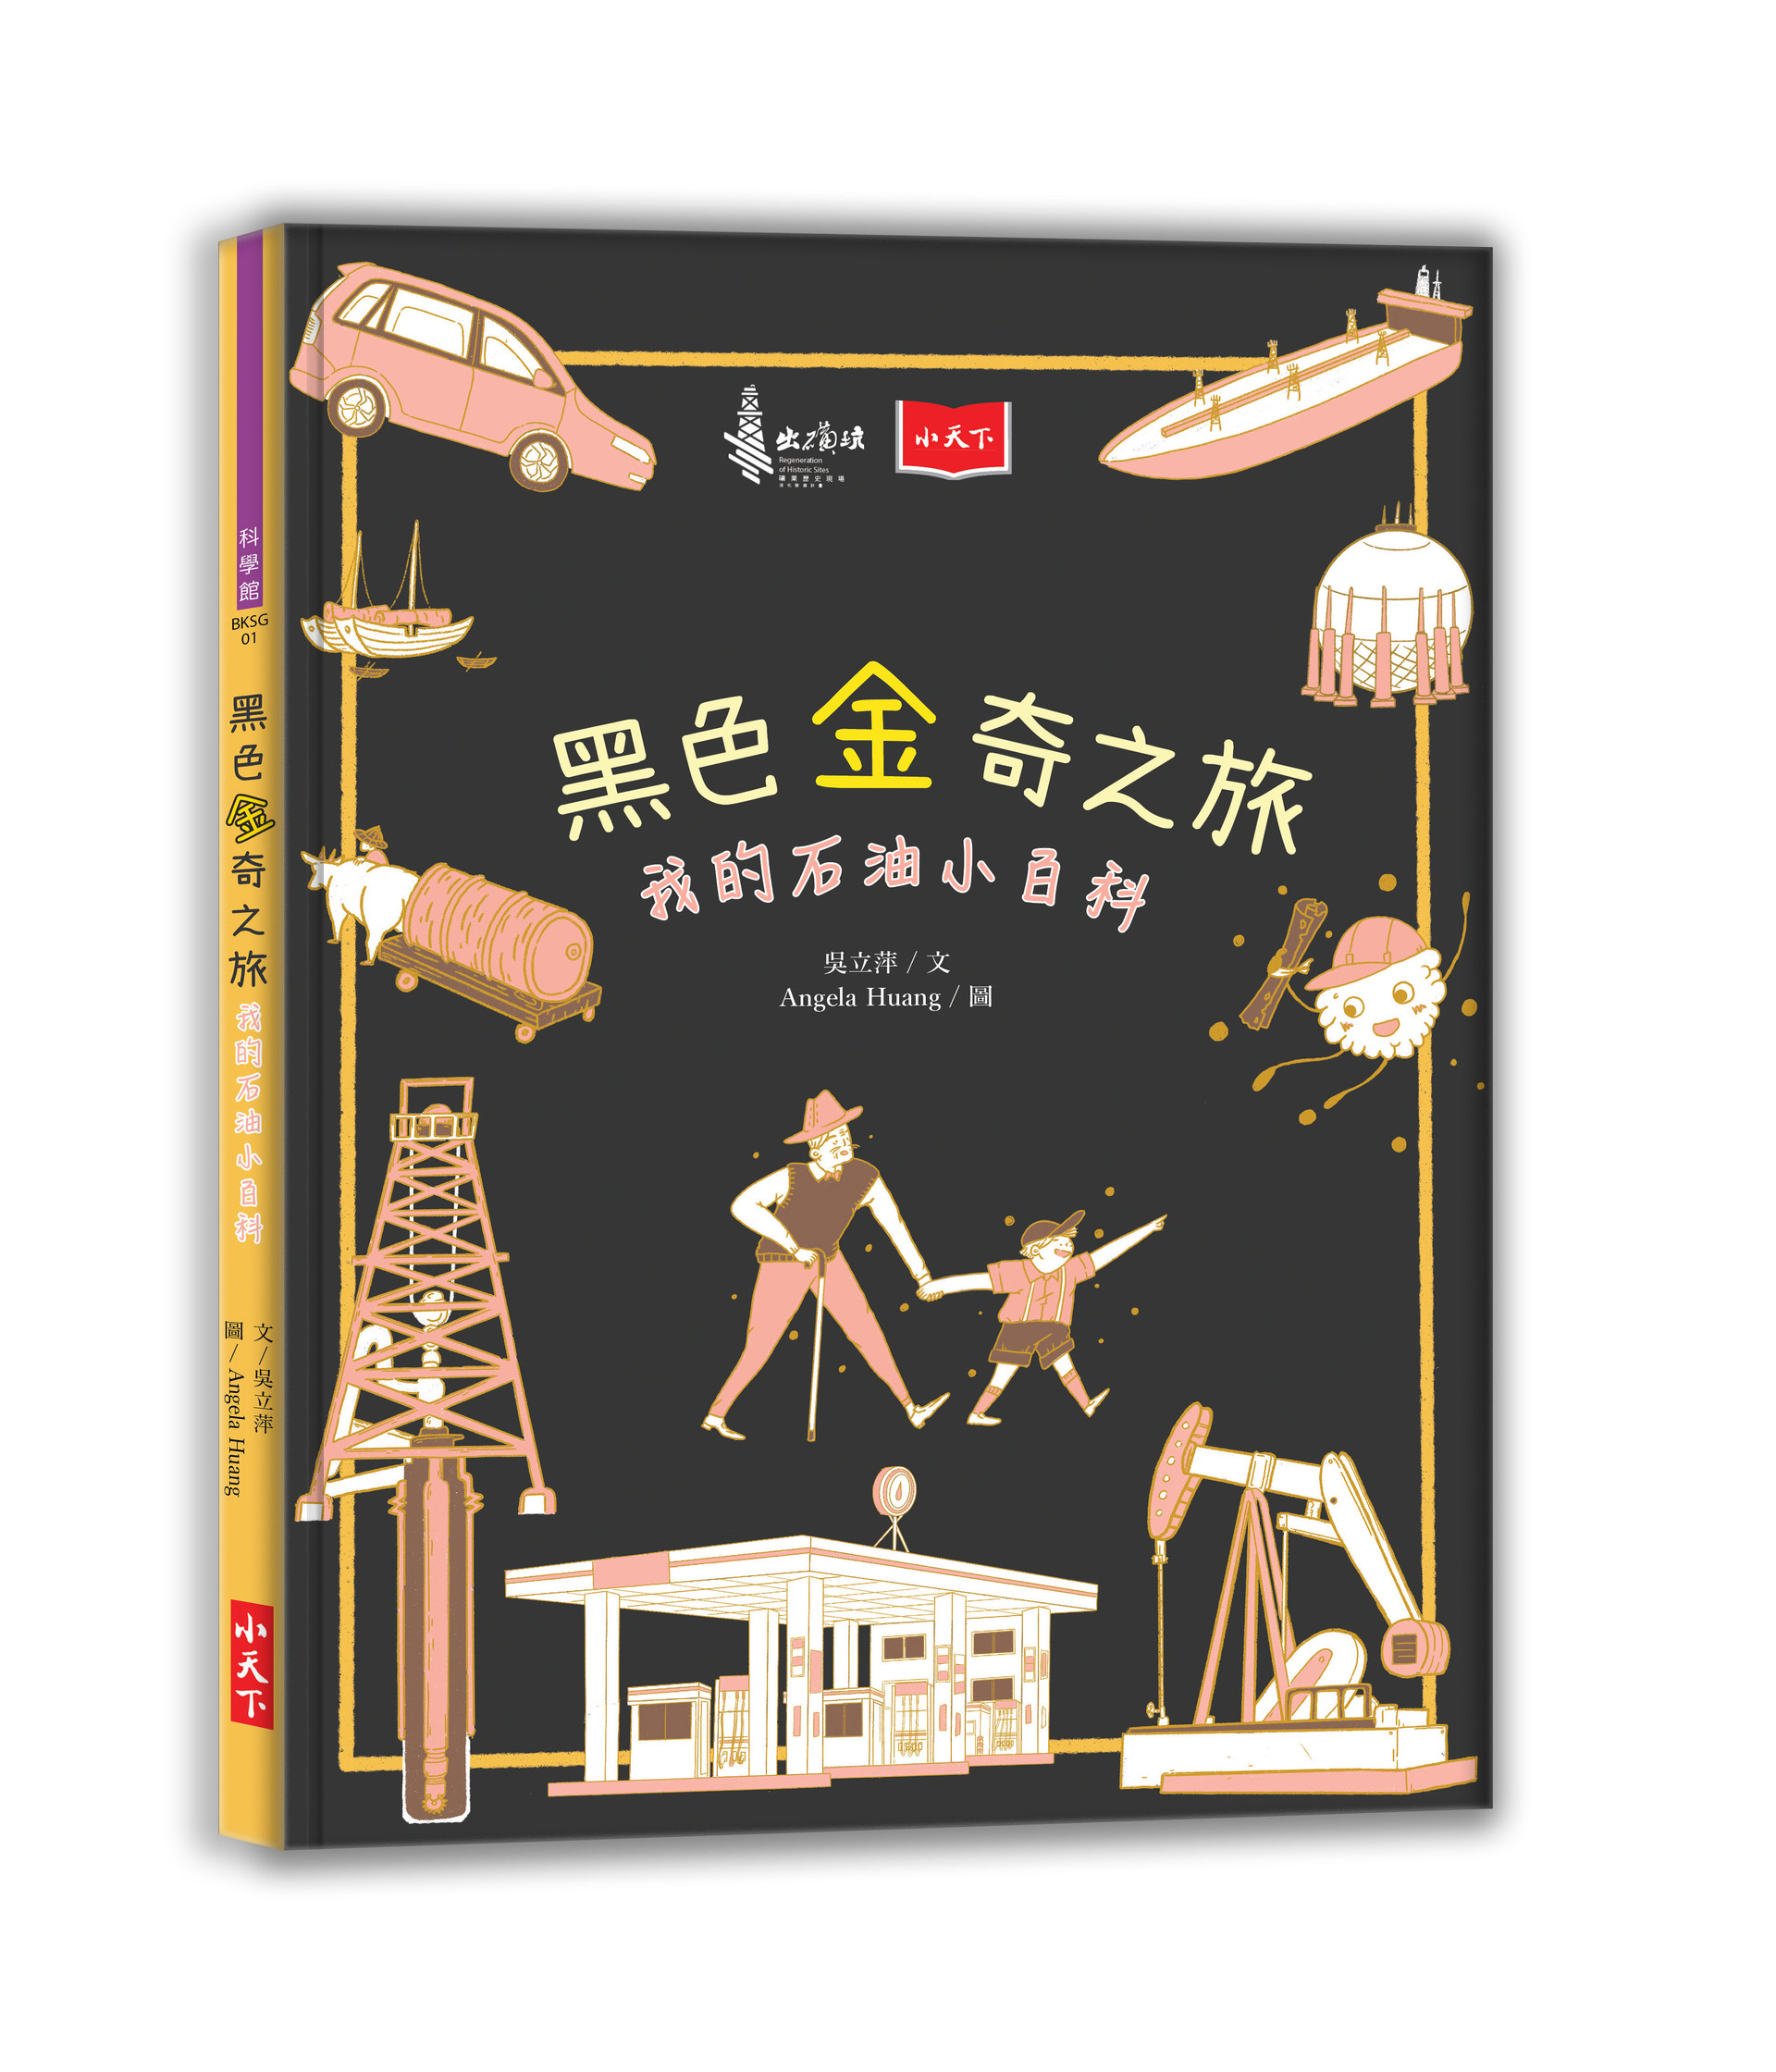 The Adventure of Oil Learning 黑色金奇之旅